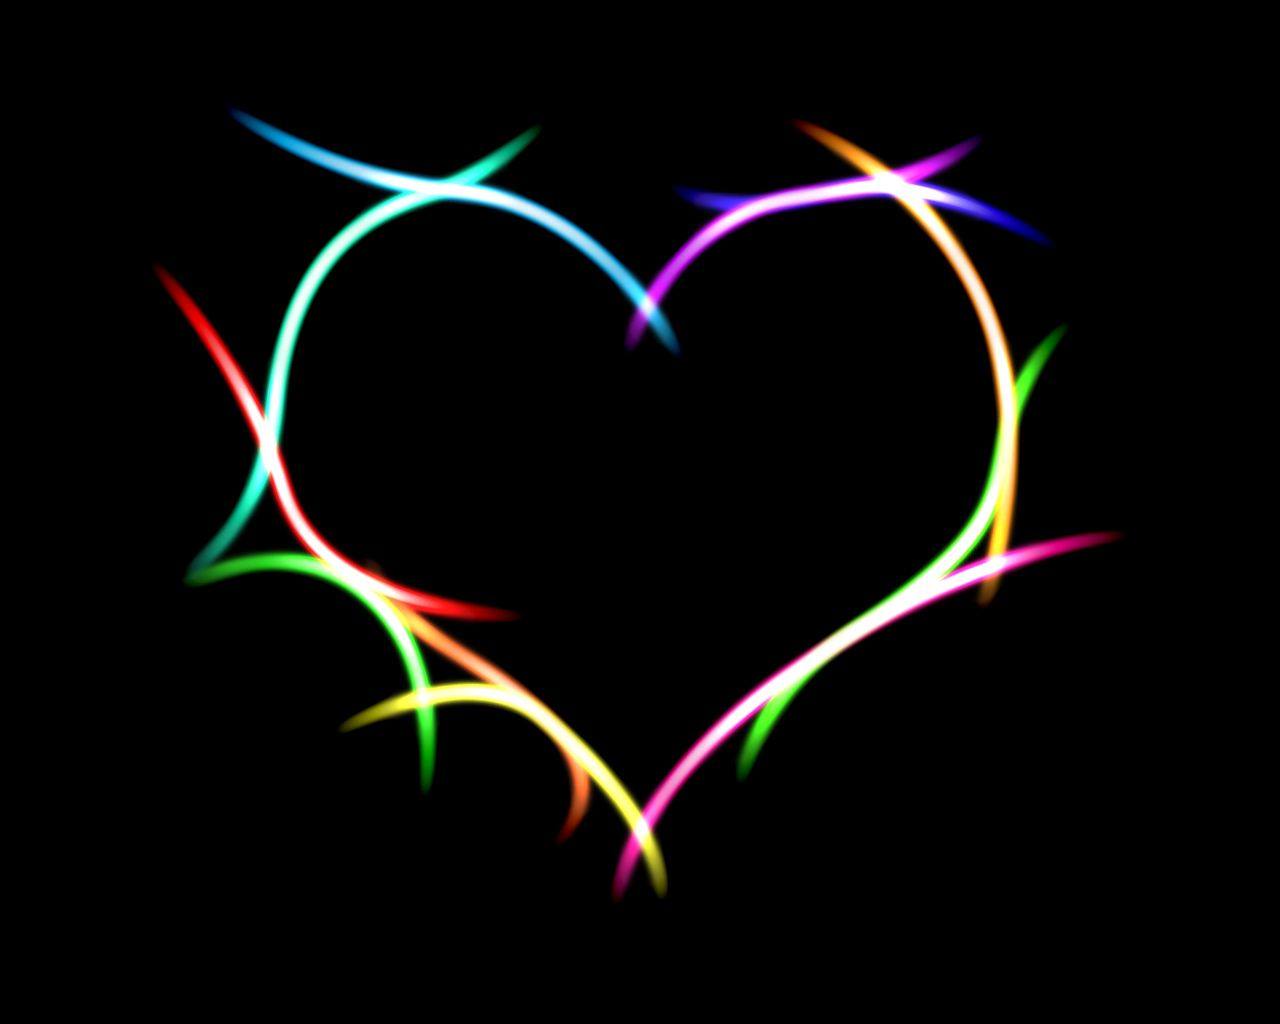 Hd Love Wallpapers For Mobile Free Download: Love Wallpaper Background HD